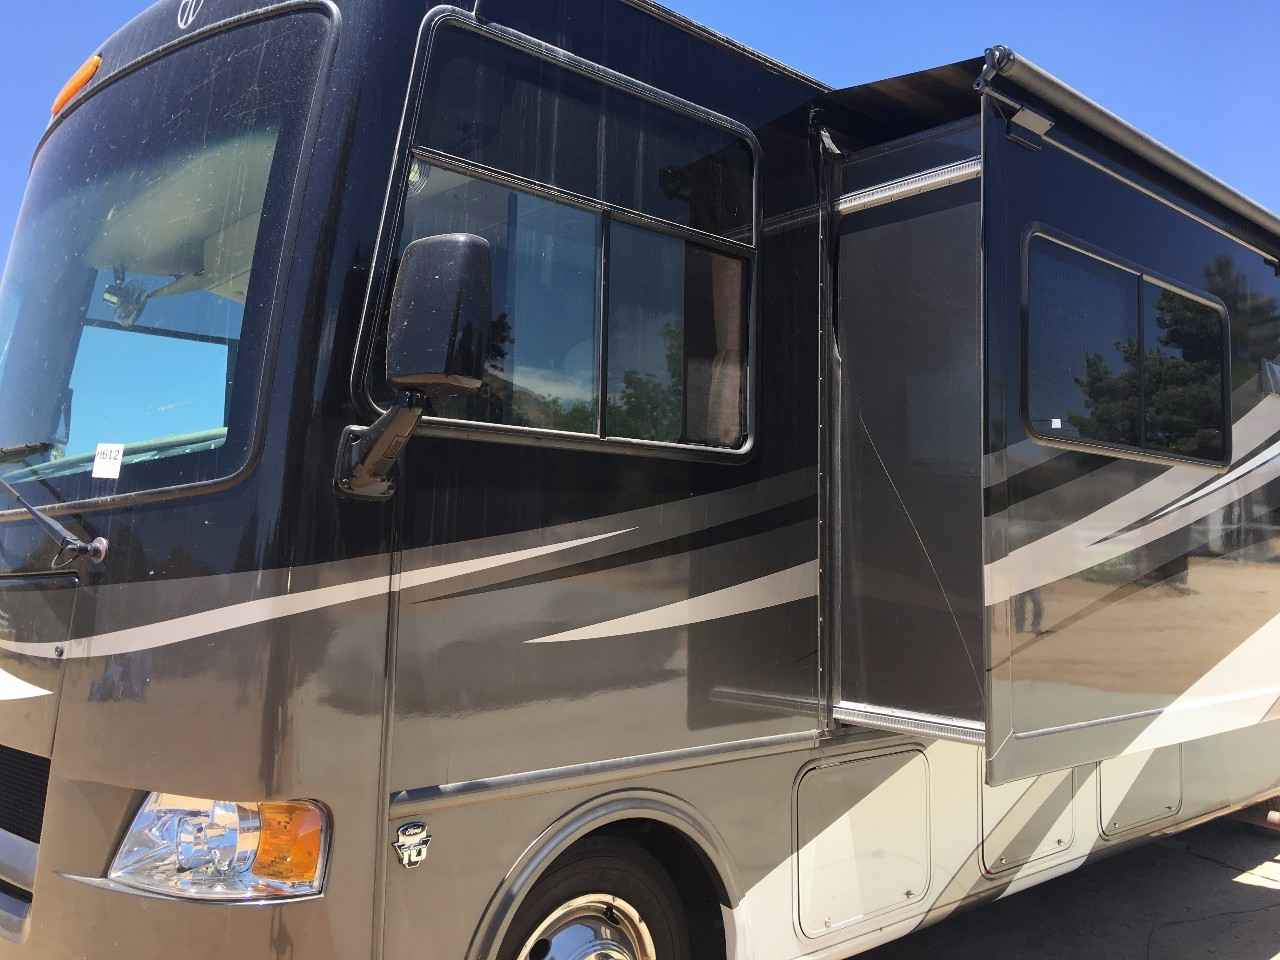 2012 Used Thor Motor Coach Hurricane 31g Class A In